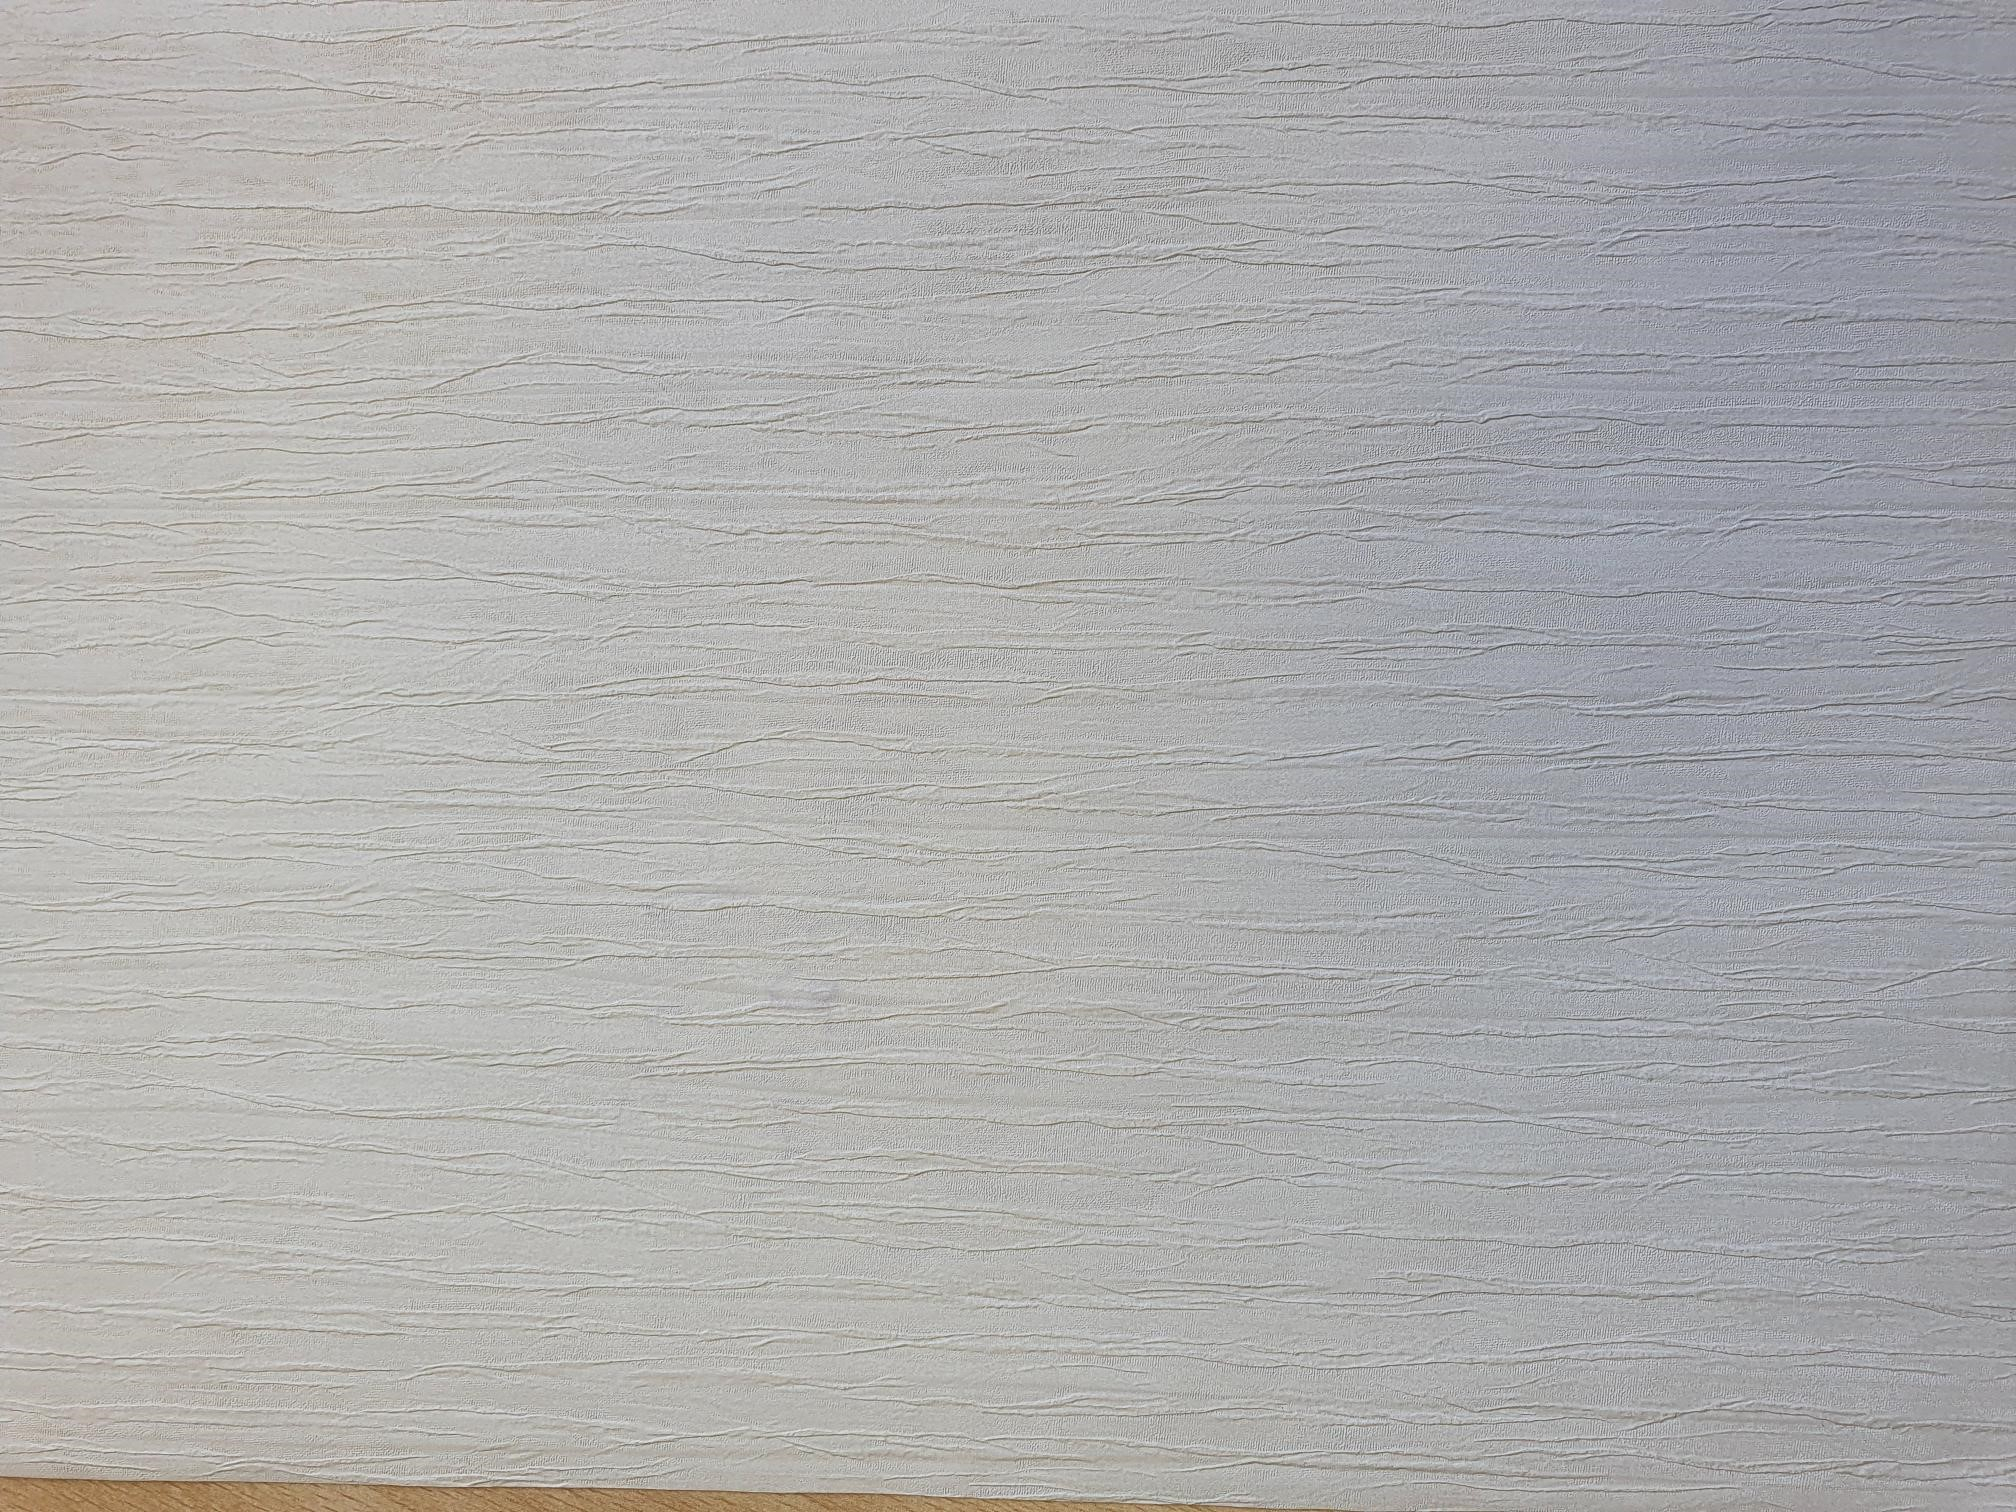 Soho Cream Wall Board 2440mm x 1220mm x 2.7mm 020859